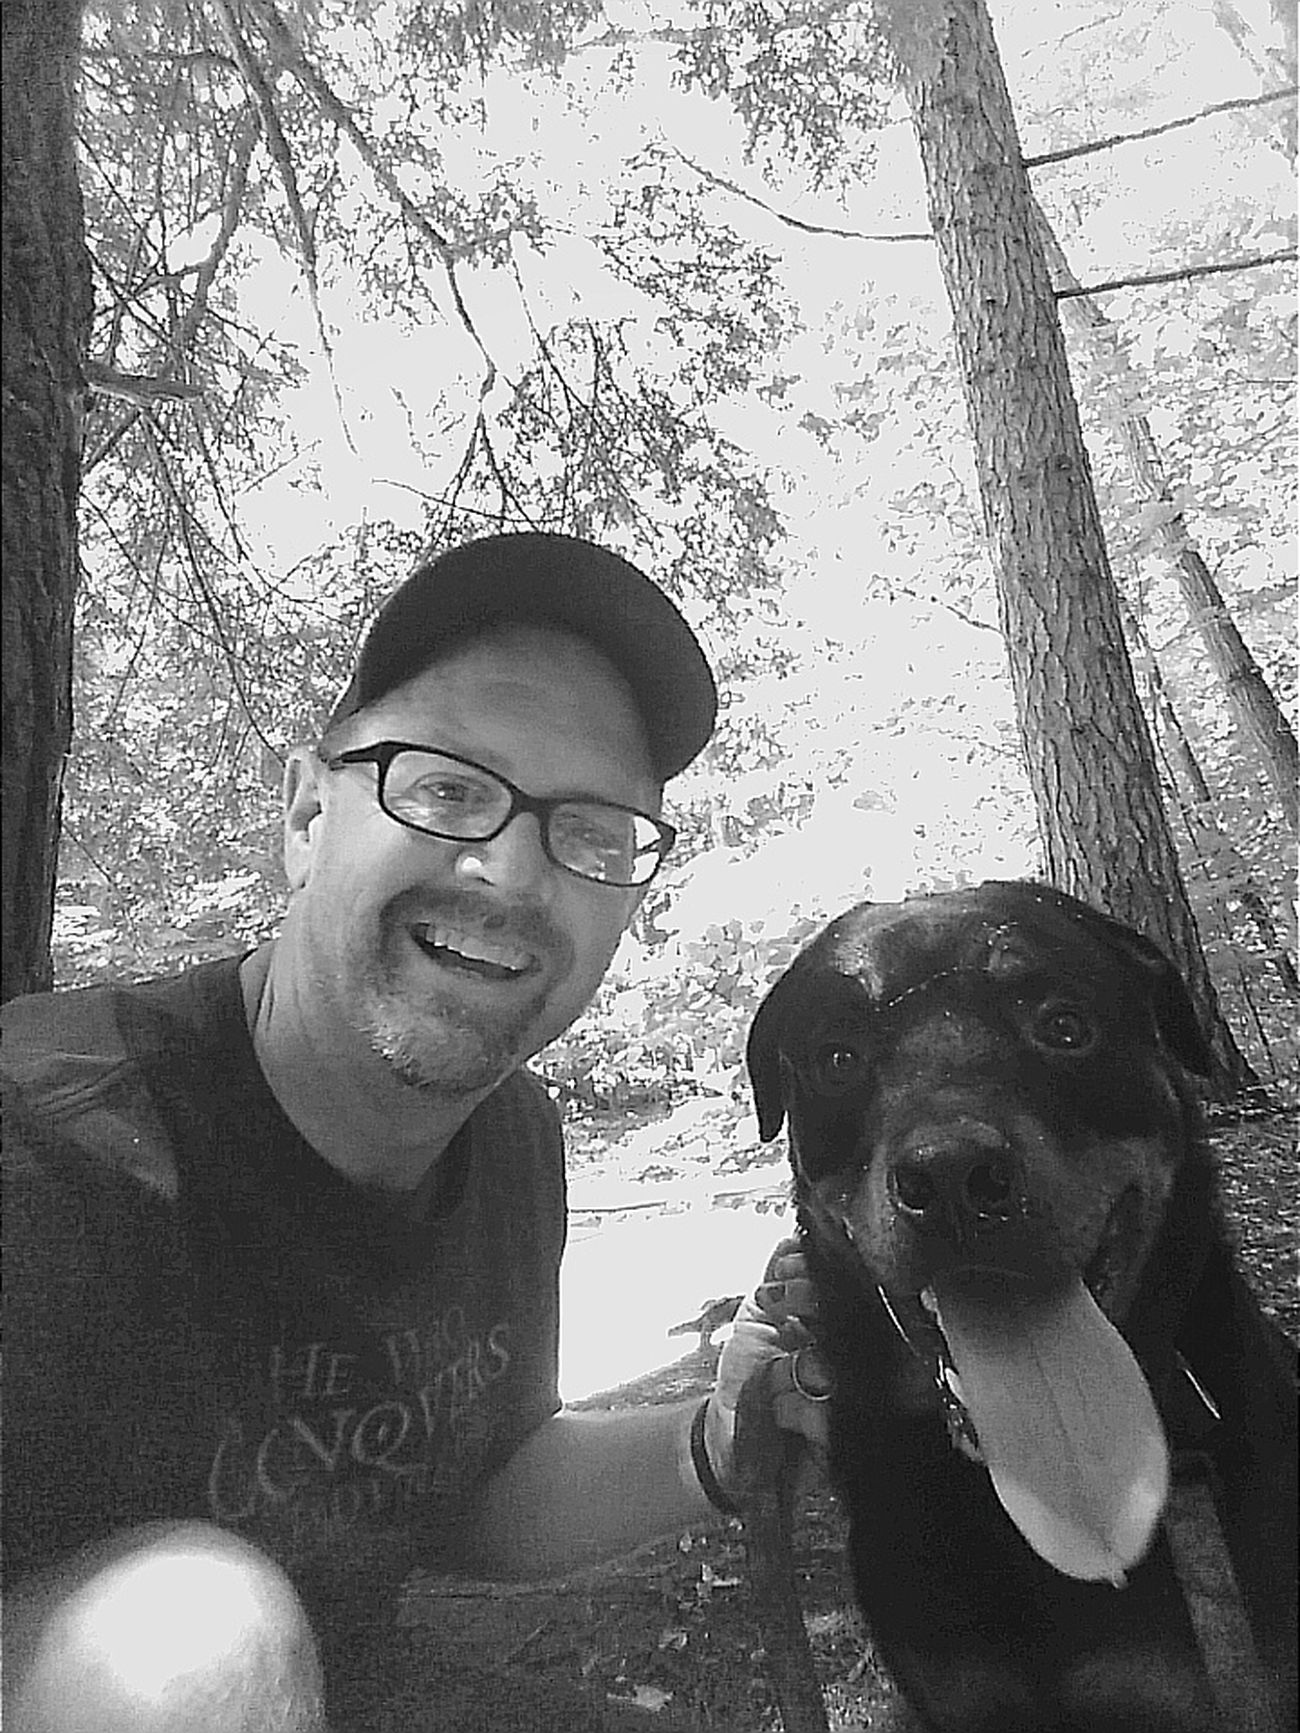 Spent the afternoon adventuring with Bear... Check This Out That's Me Relaxing My Buddy Ceasars Cousin Dogs Of EyeEm Rottweilerofinstagram Very Inspired By My Muse Onlygodcouldcreatethis Rottweiler Bnwphotography Bnw_captures BnwMy Buddy Bear Our World Thru My Eyes Rottweilerlove Bnw_life